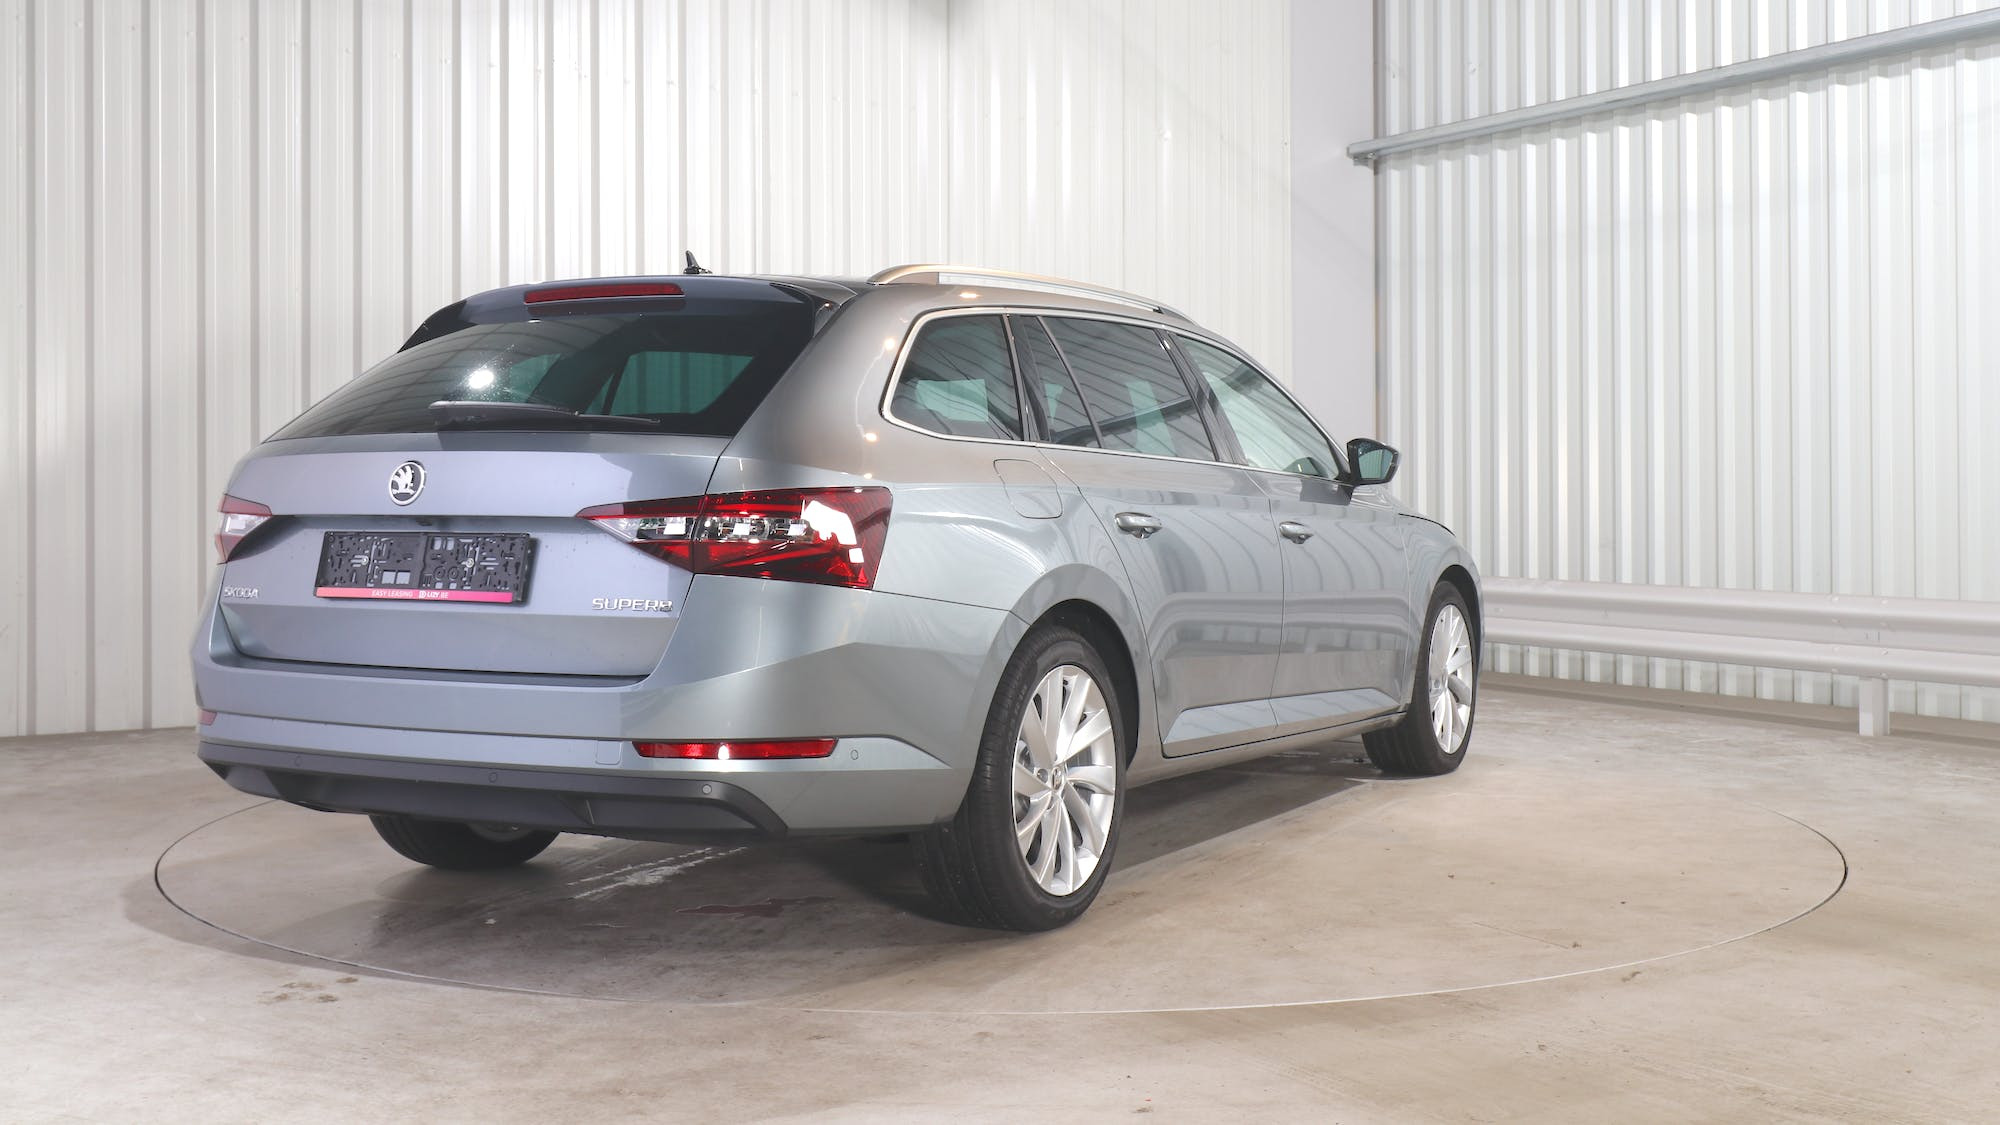 SKODA SUPERB COMBI leasing exterior 6